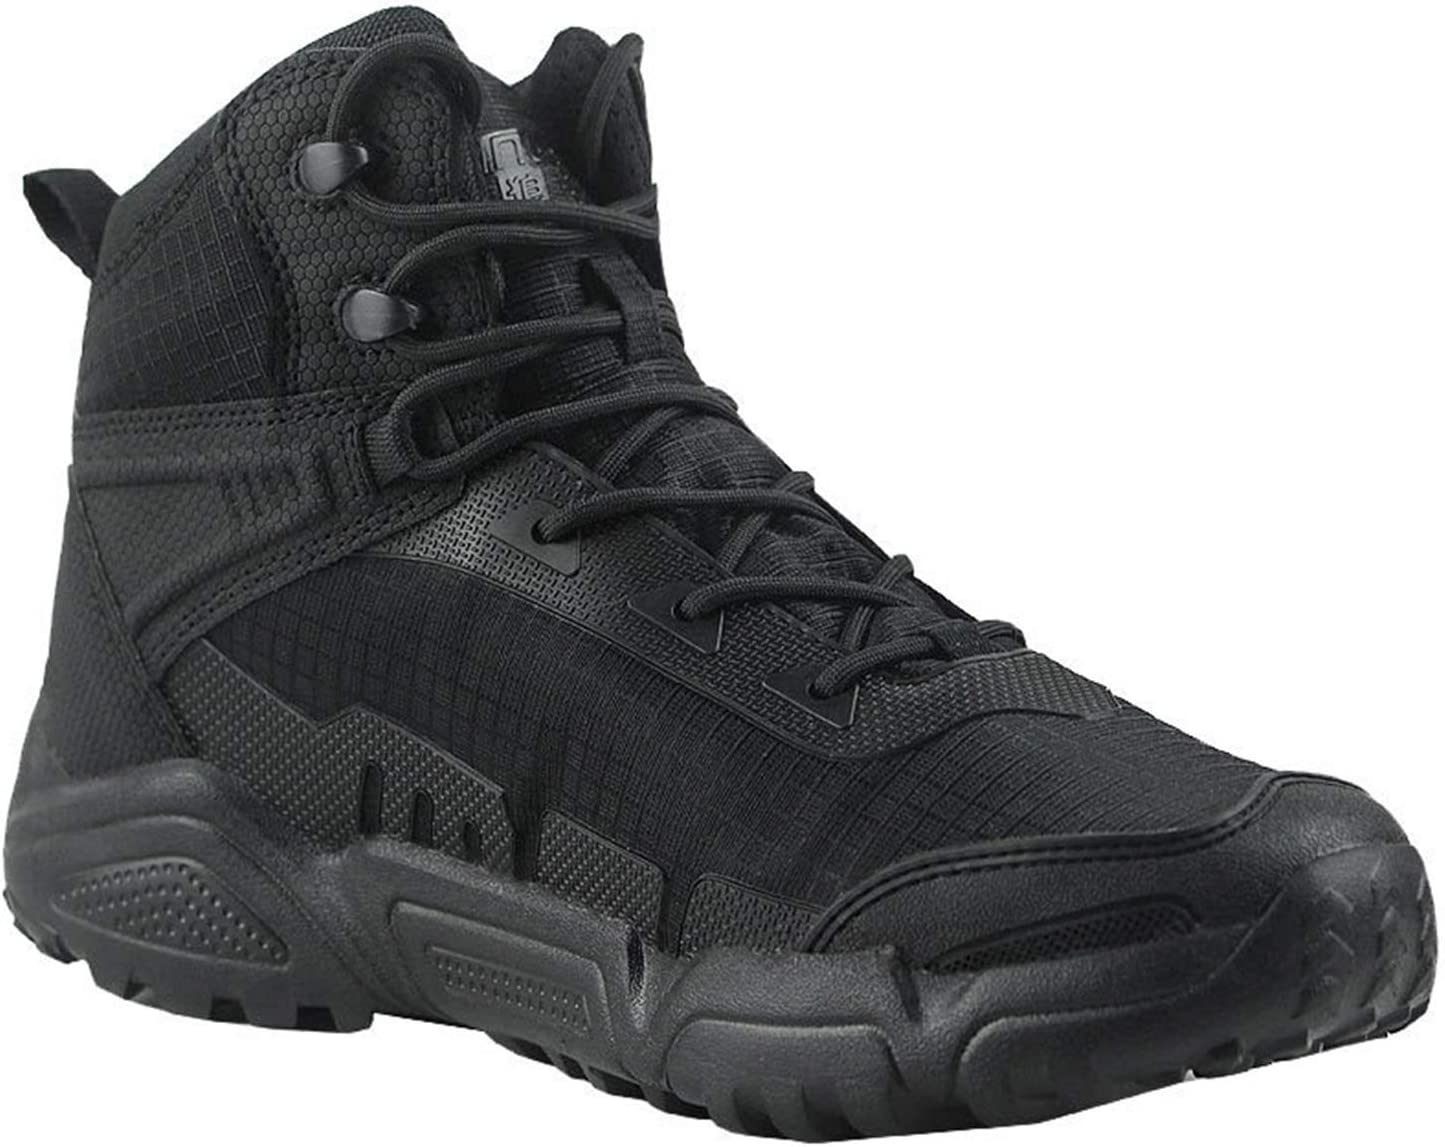 Men's Outdoor Combat Boots Military Boots, Light and Breathable Hiking Boots Camping Desert Boots, Safety Work Shoes, Wear-Resistant Shock-Absorbing Hiking Boots, Used for Hiking, Hunting, Camping